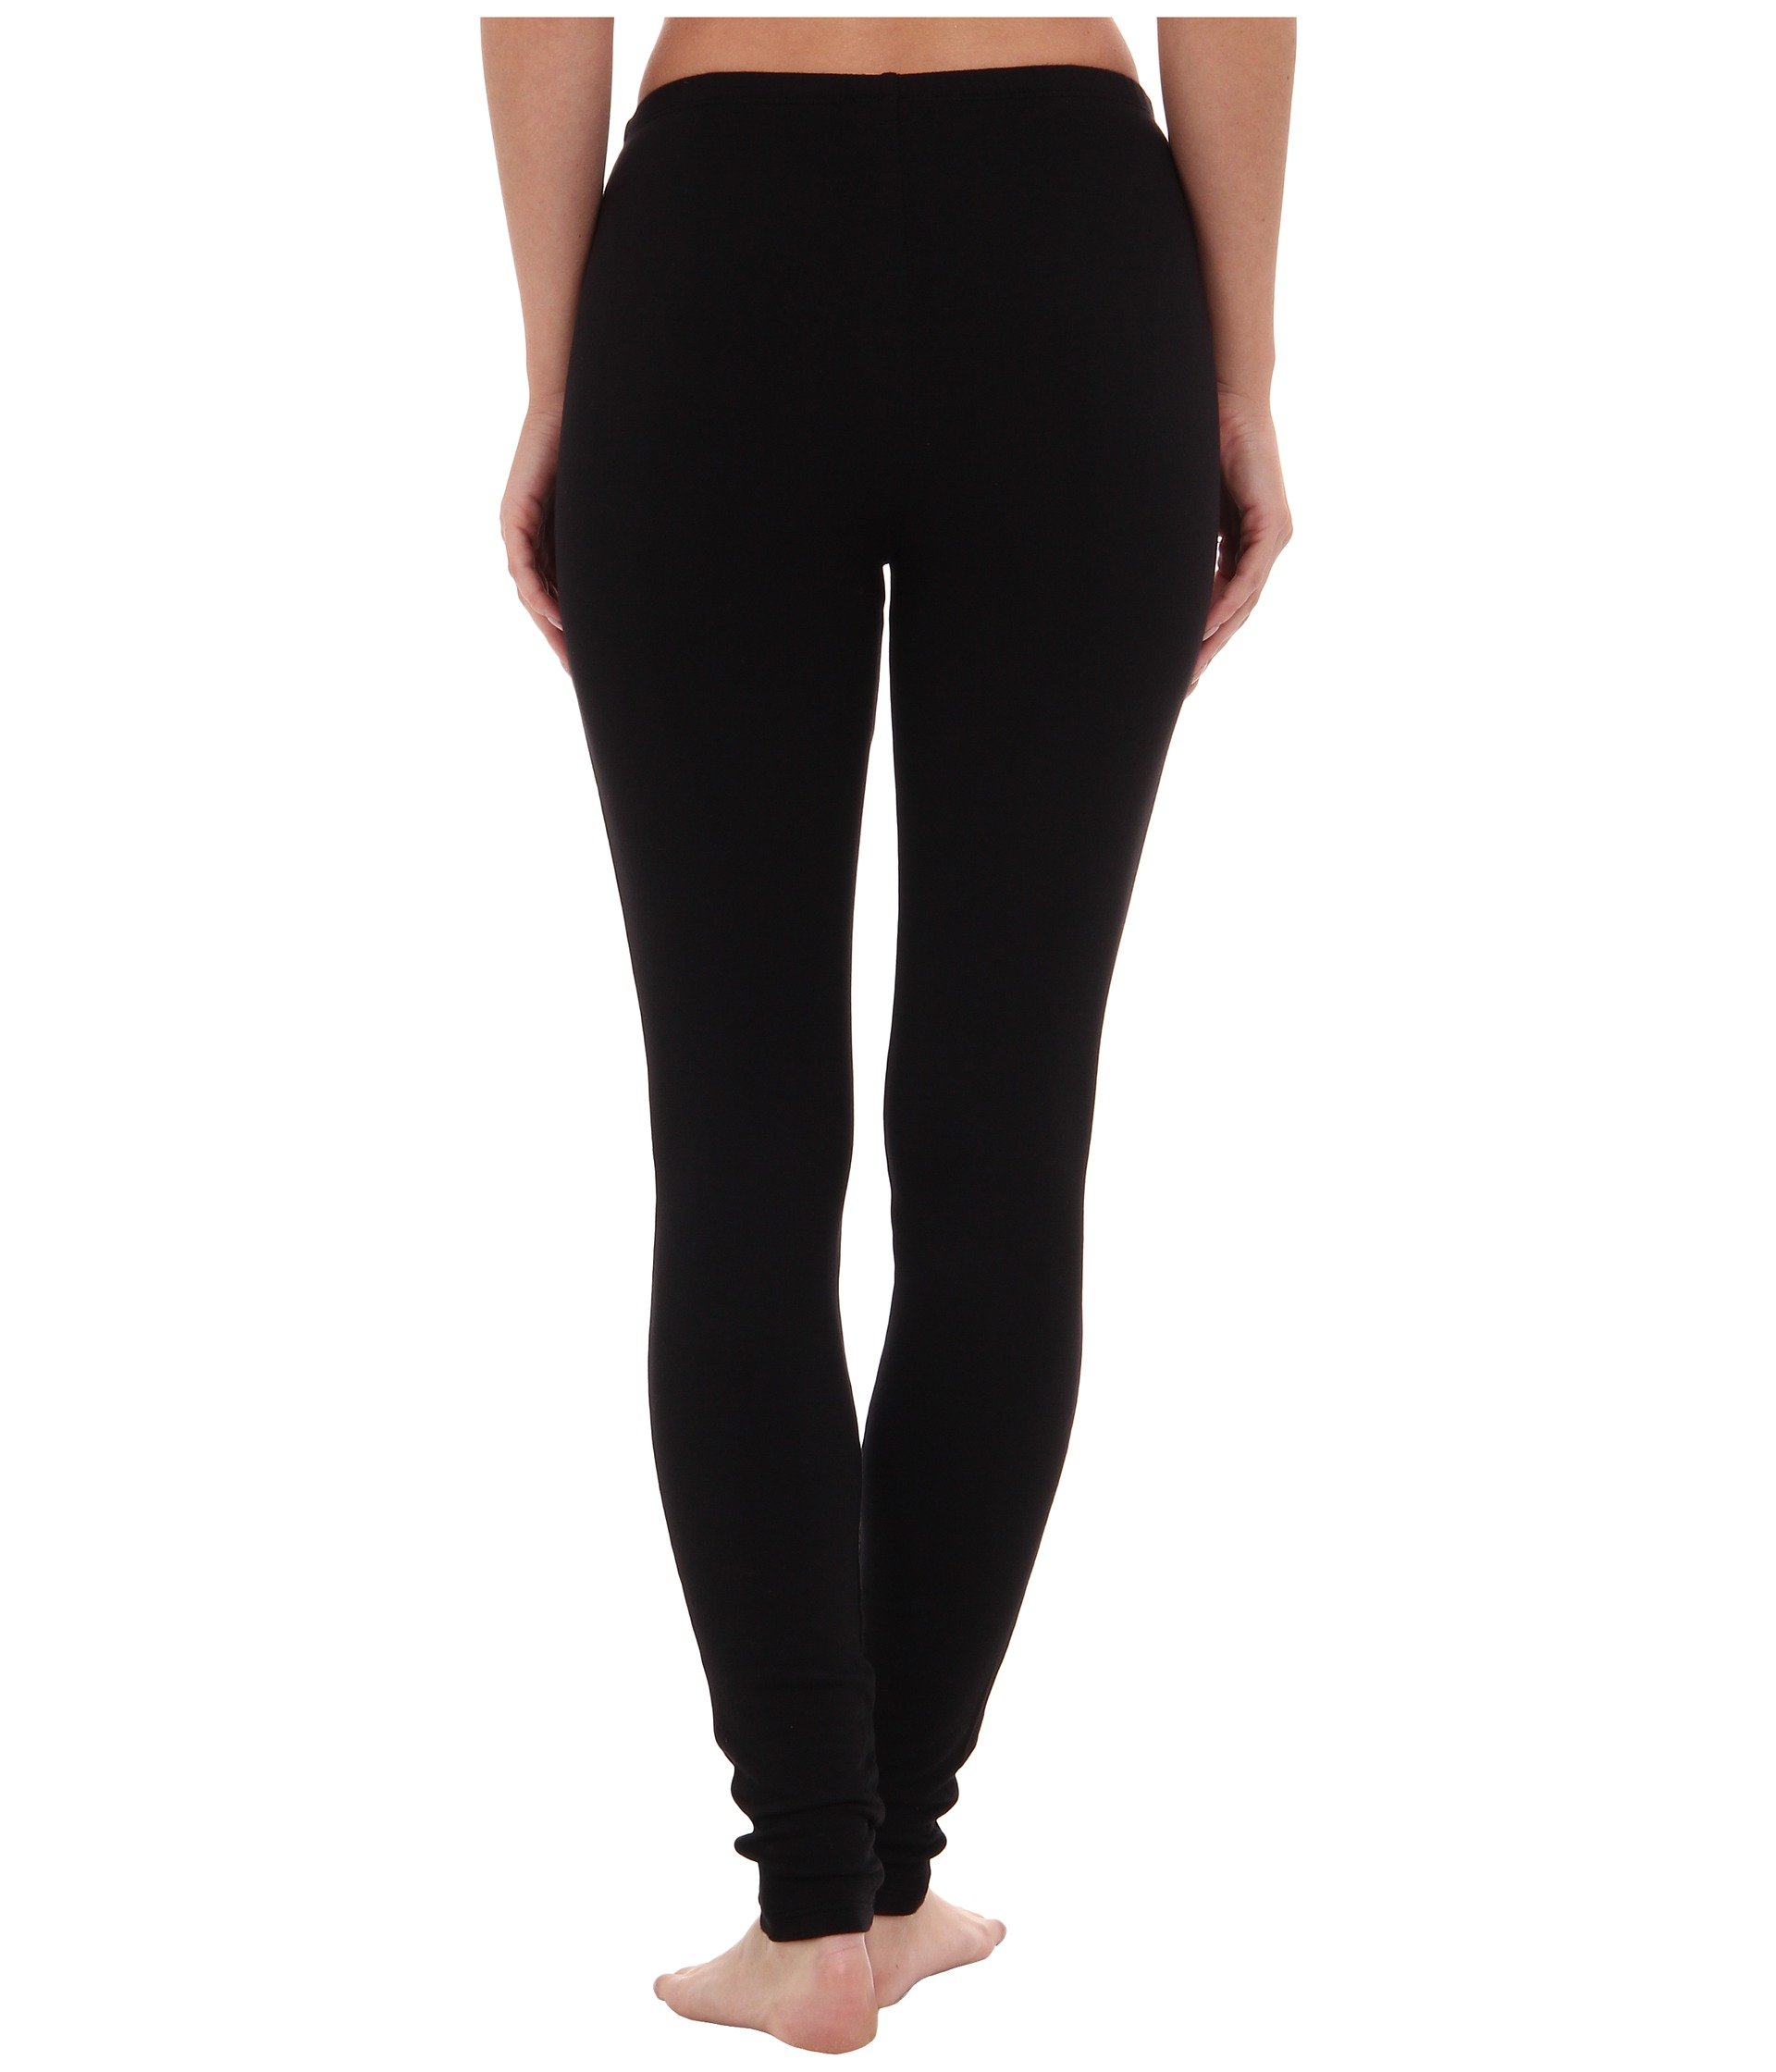 Black Legging Splendid Black Terry French Black Splendid Splendid Terry French Legging Terry Legging Splendid French xwAxz4C